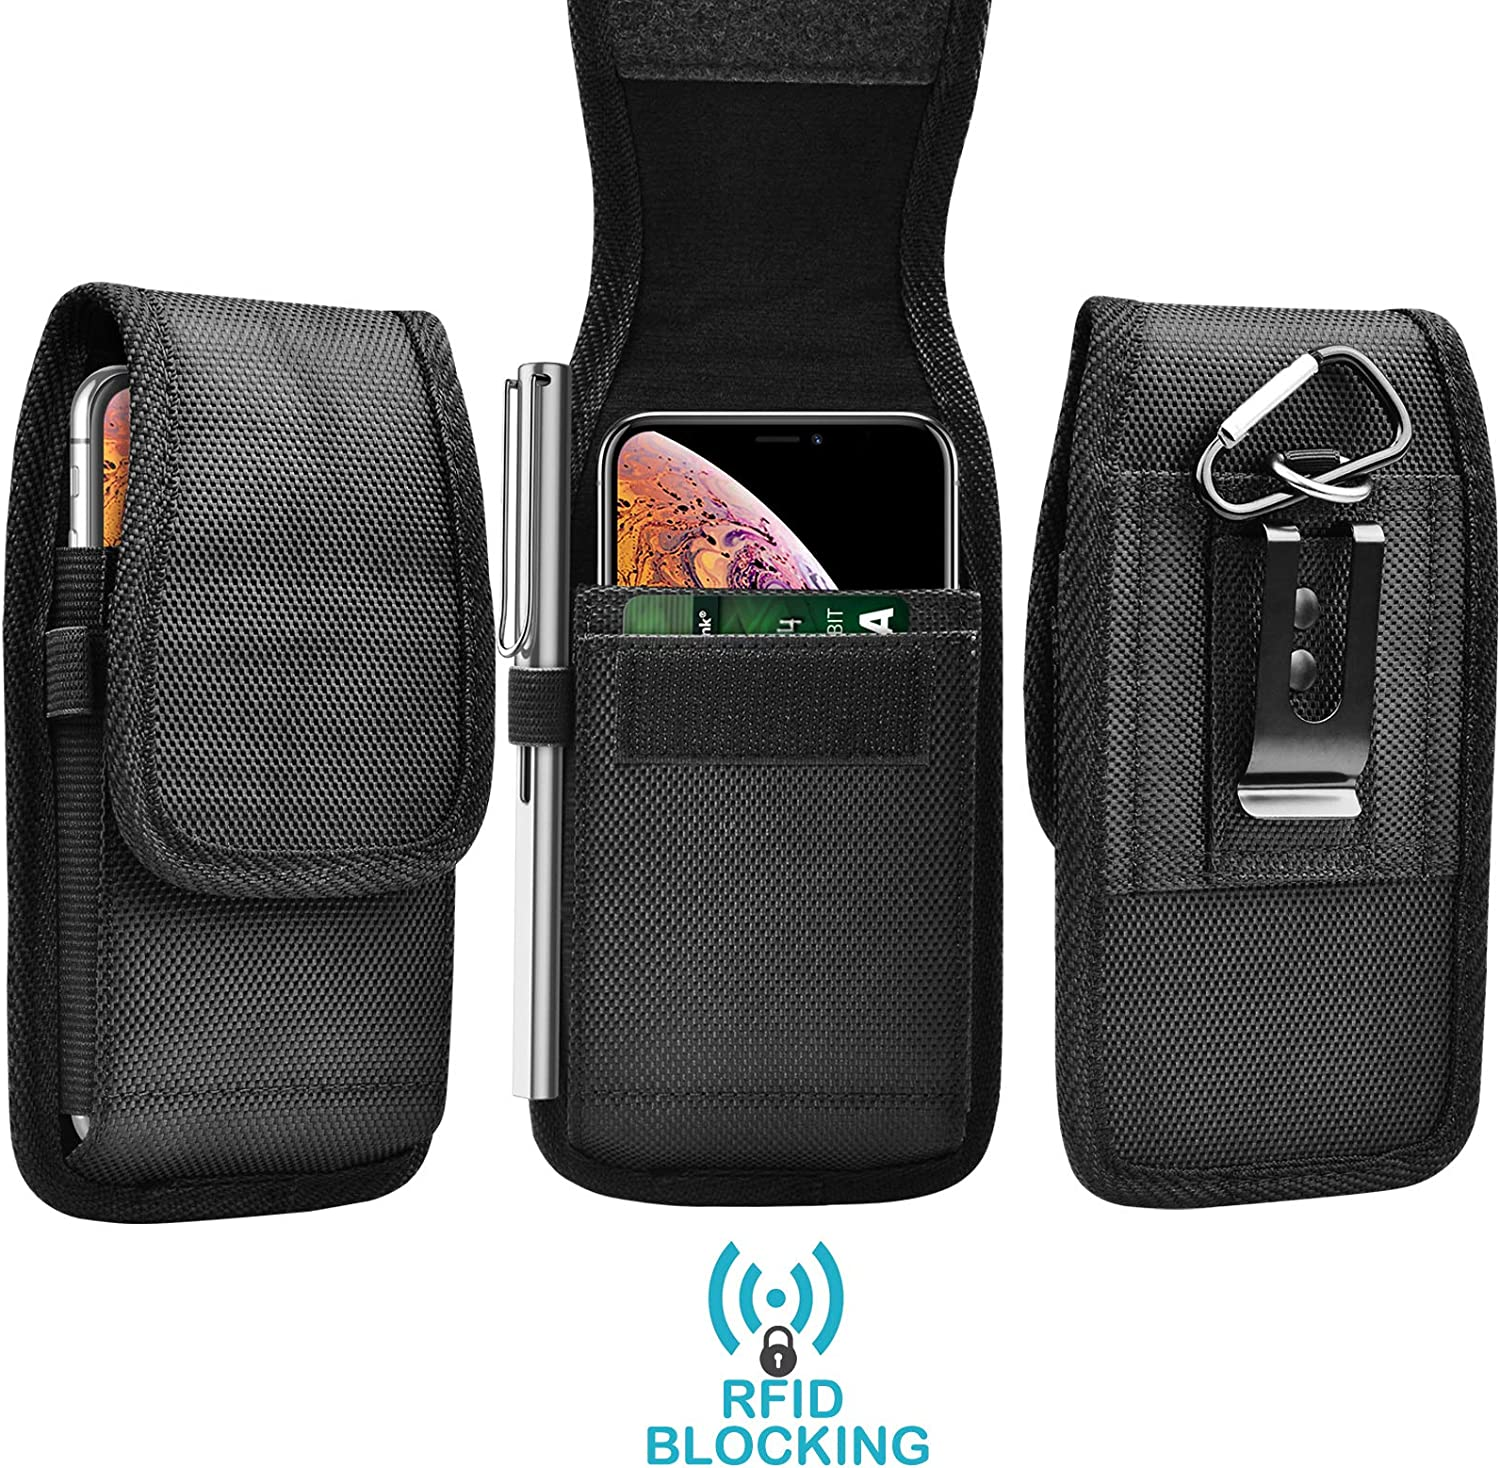 Discount mail order Tekcoo RFID Blocking Cell Phone Holster for 13 iPhone Max Pro Quality inspection